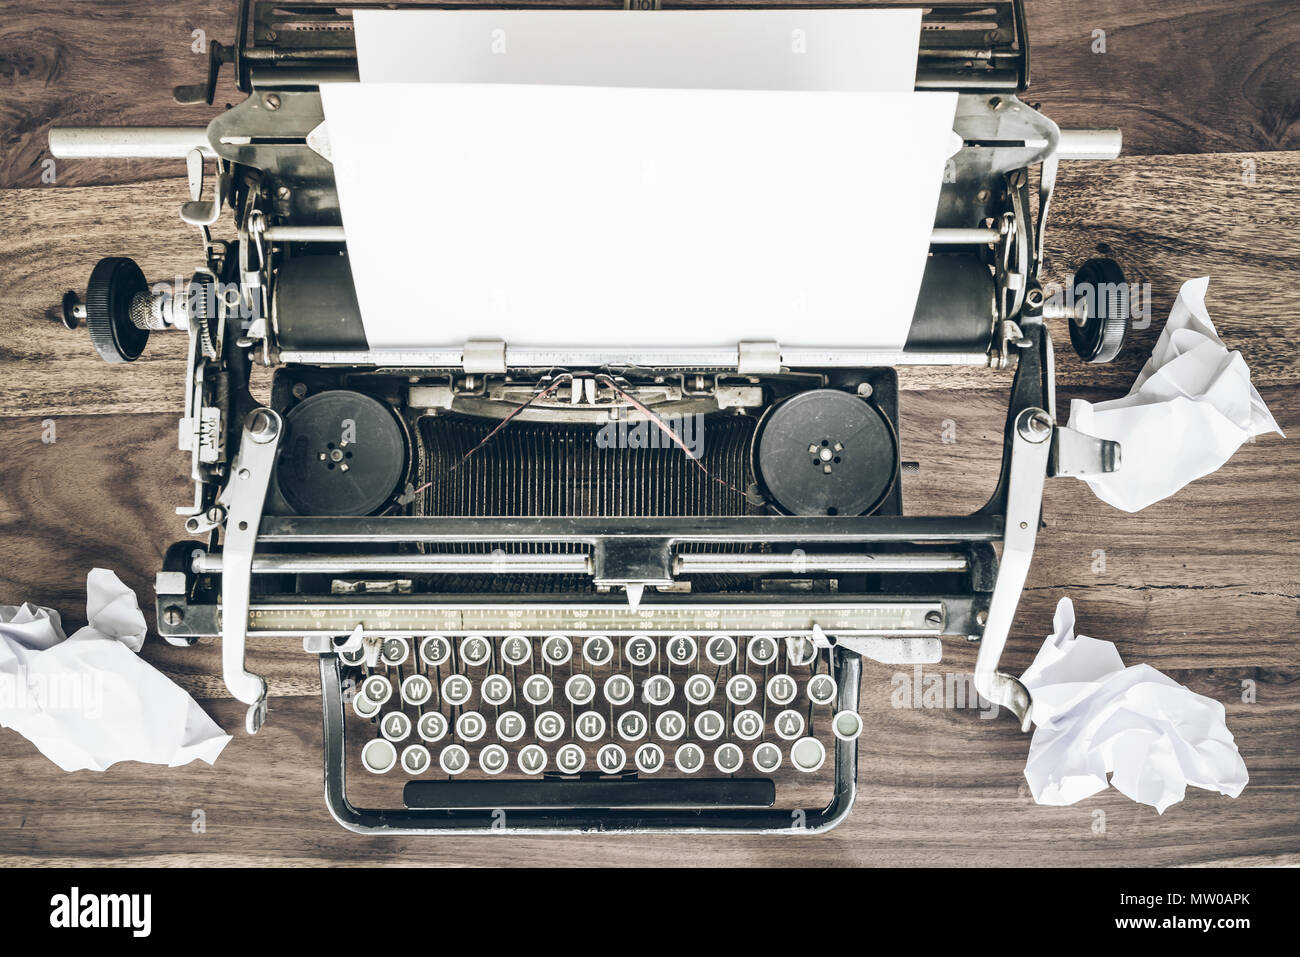 top view of old manual typewriter and crumpled sheets of paper on rustic wooden desk - Stock Image